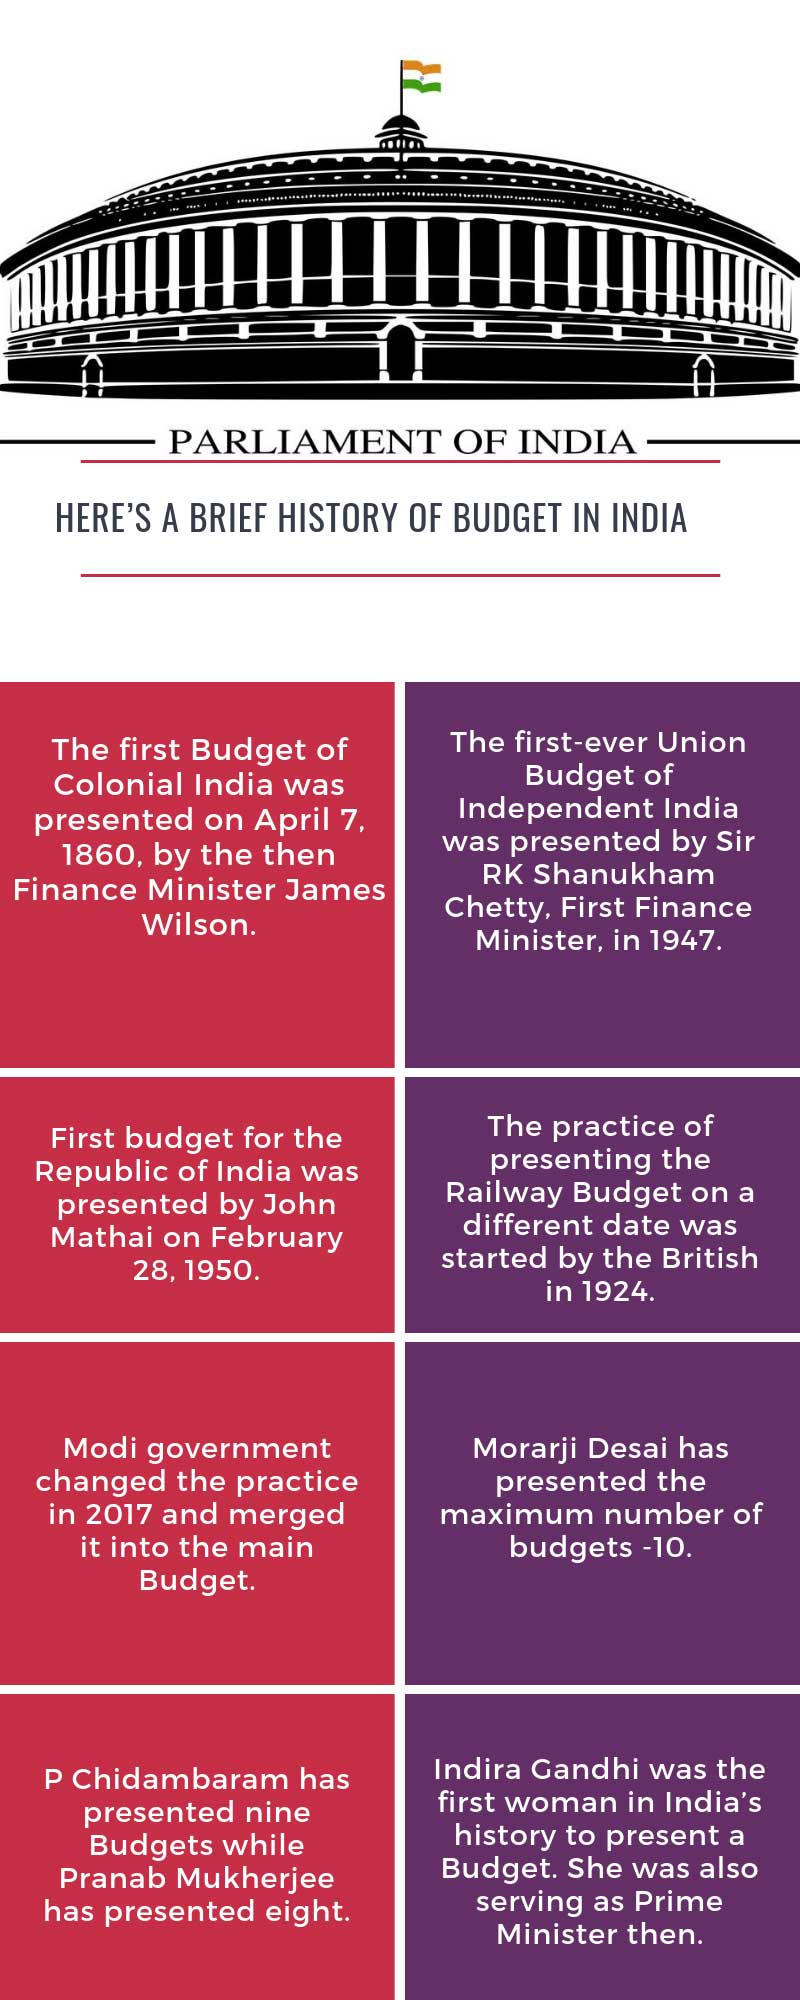 Merging of Railway and Union budgets: Whats the history?